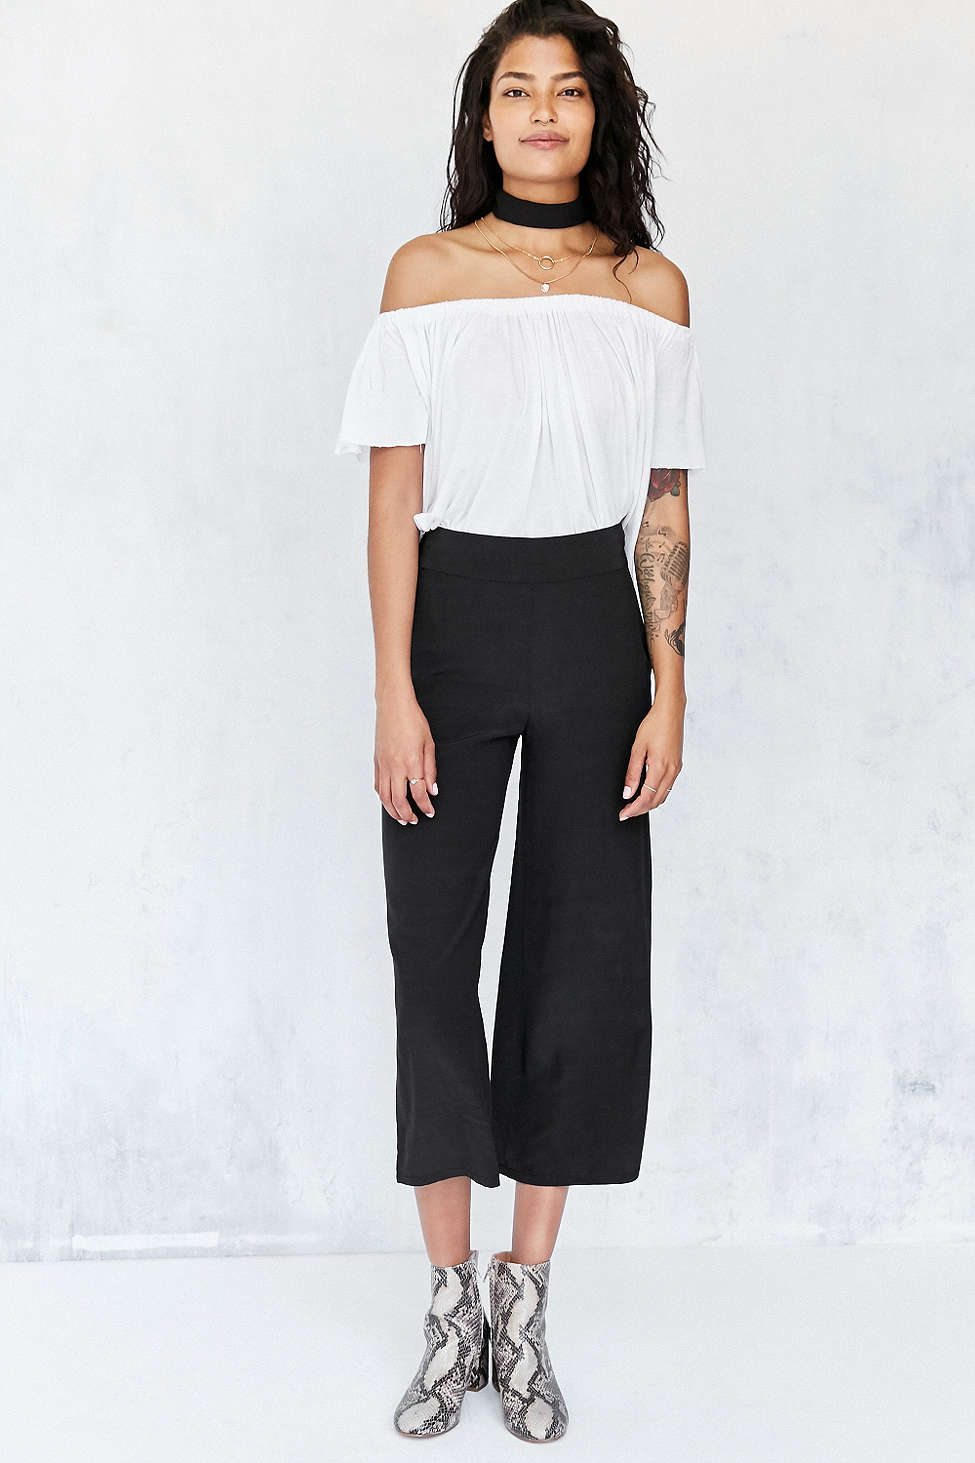 black-culottes-pants-white-top-offshoulder-white-shoe-booties-brun-spring-summer-style-fashion-wear-snakeskin-choker-lunch.jpg